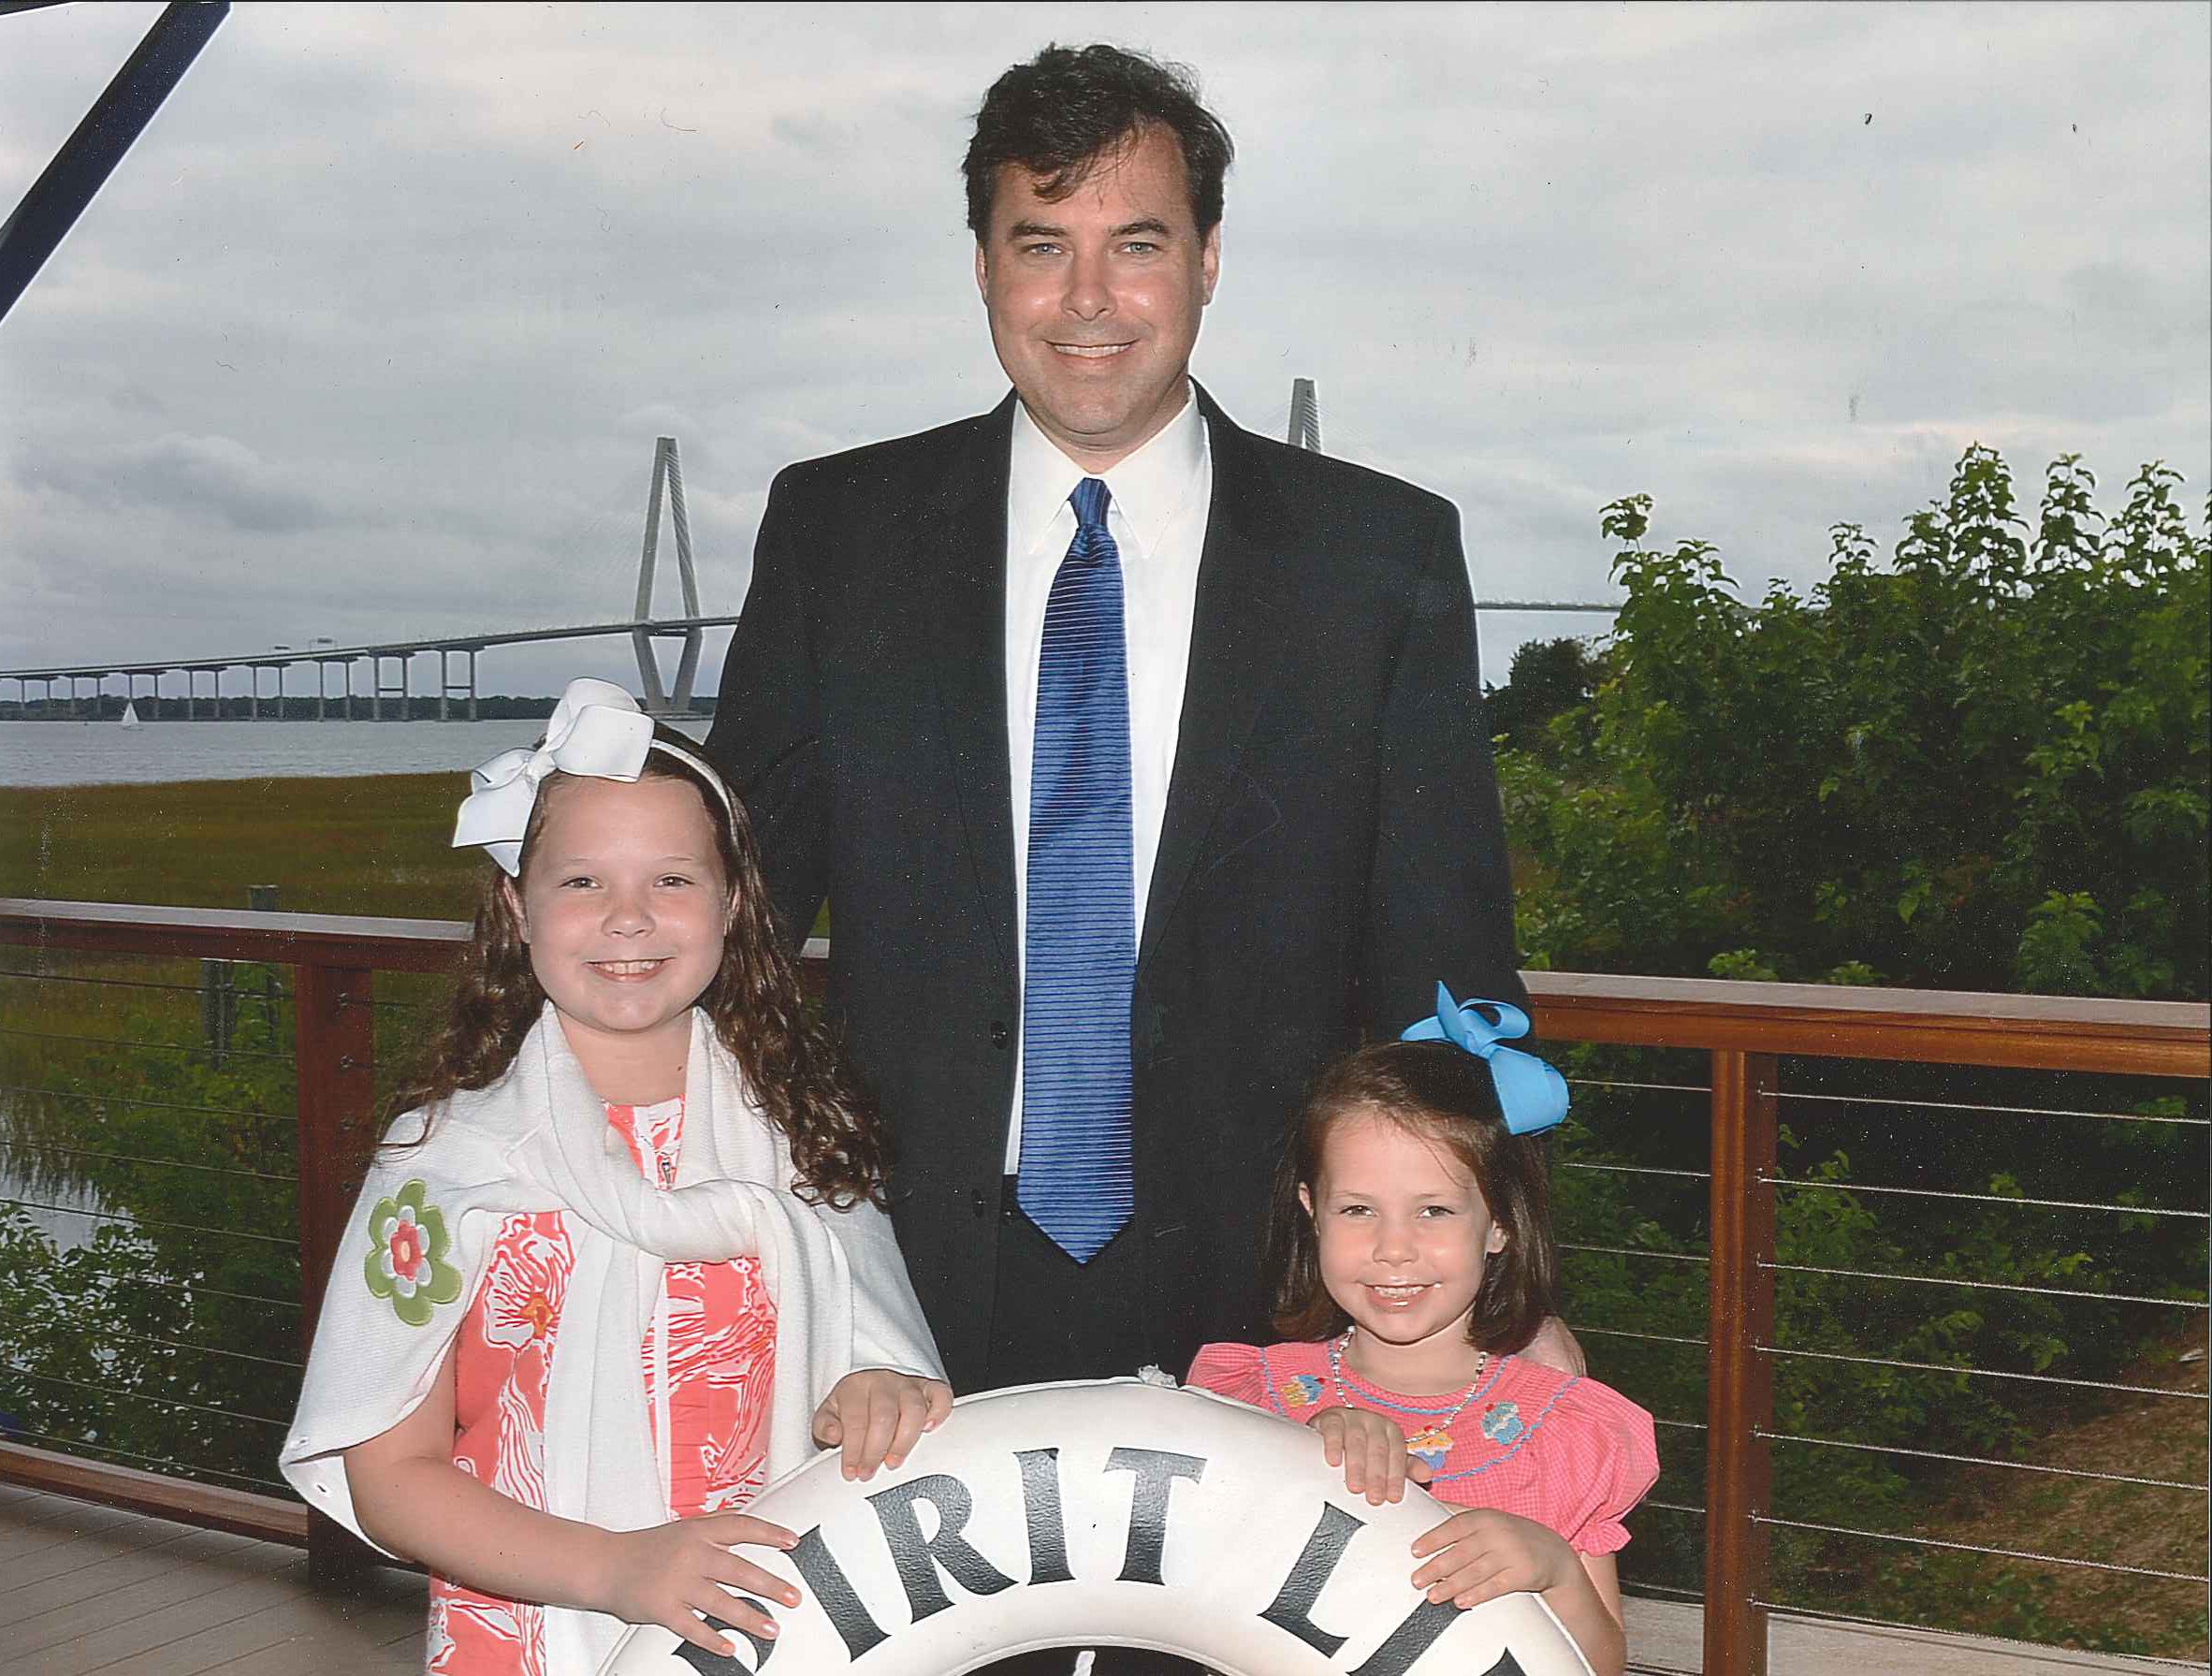 The YMCA father / daughter Indian Princess program is a great opportunity to spend time with my kids and support the greater Charleston YMCA programs at the same time. Events include camping trips, walk for water, pajama bowling, etc. This picture is from a semi-formal harbor dinner cruise at patriots point.  Andy Clark